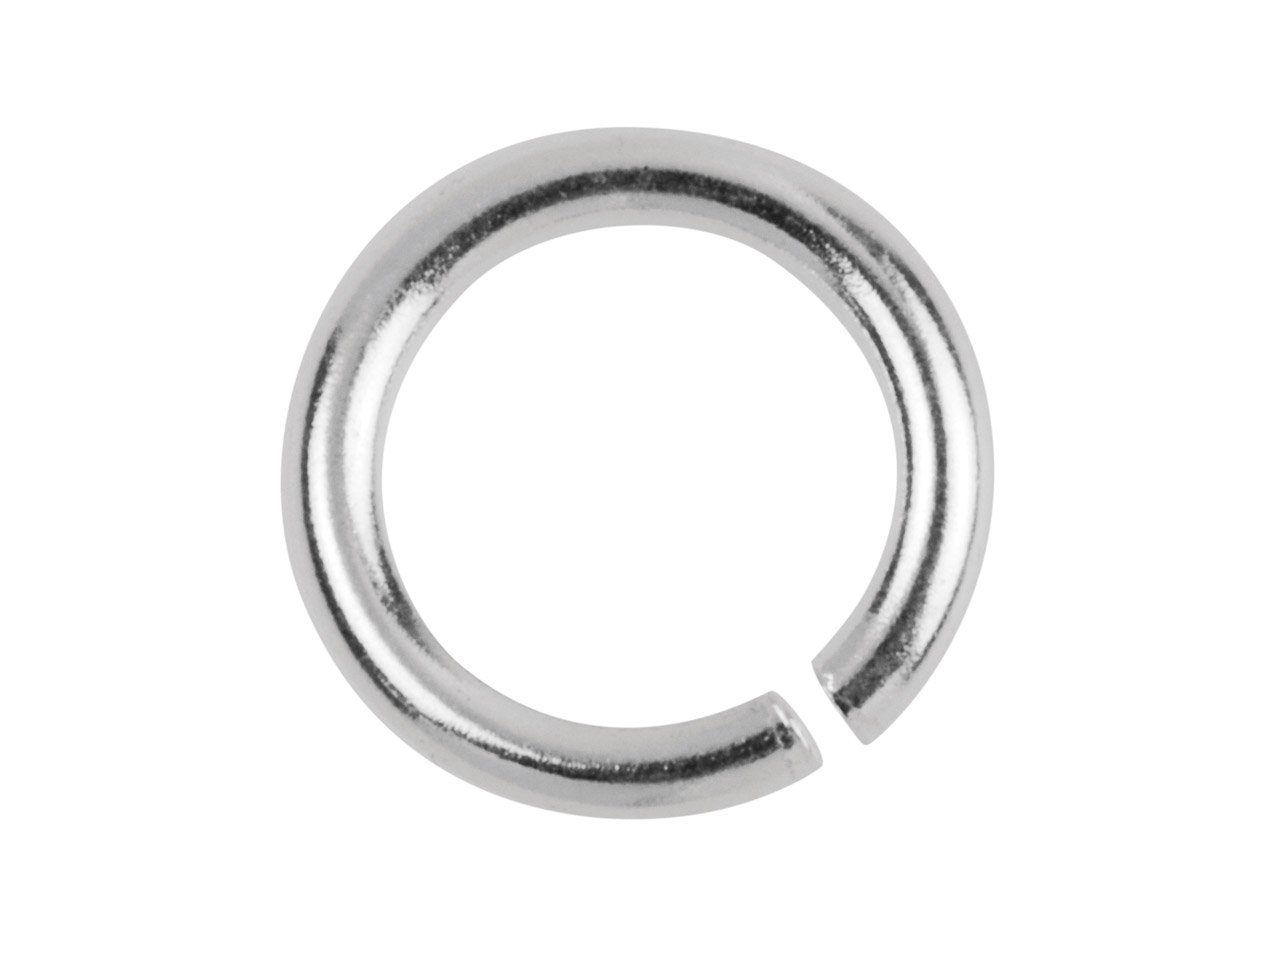 10 x Solid Sterling Silver Jump Rings - Open 6mm Good Quality Heavy Strong na